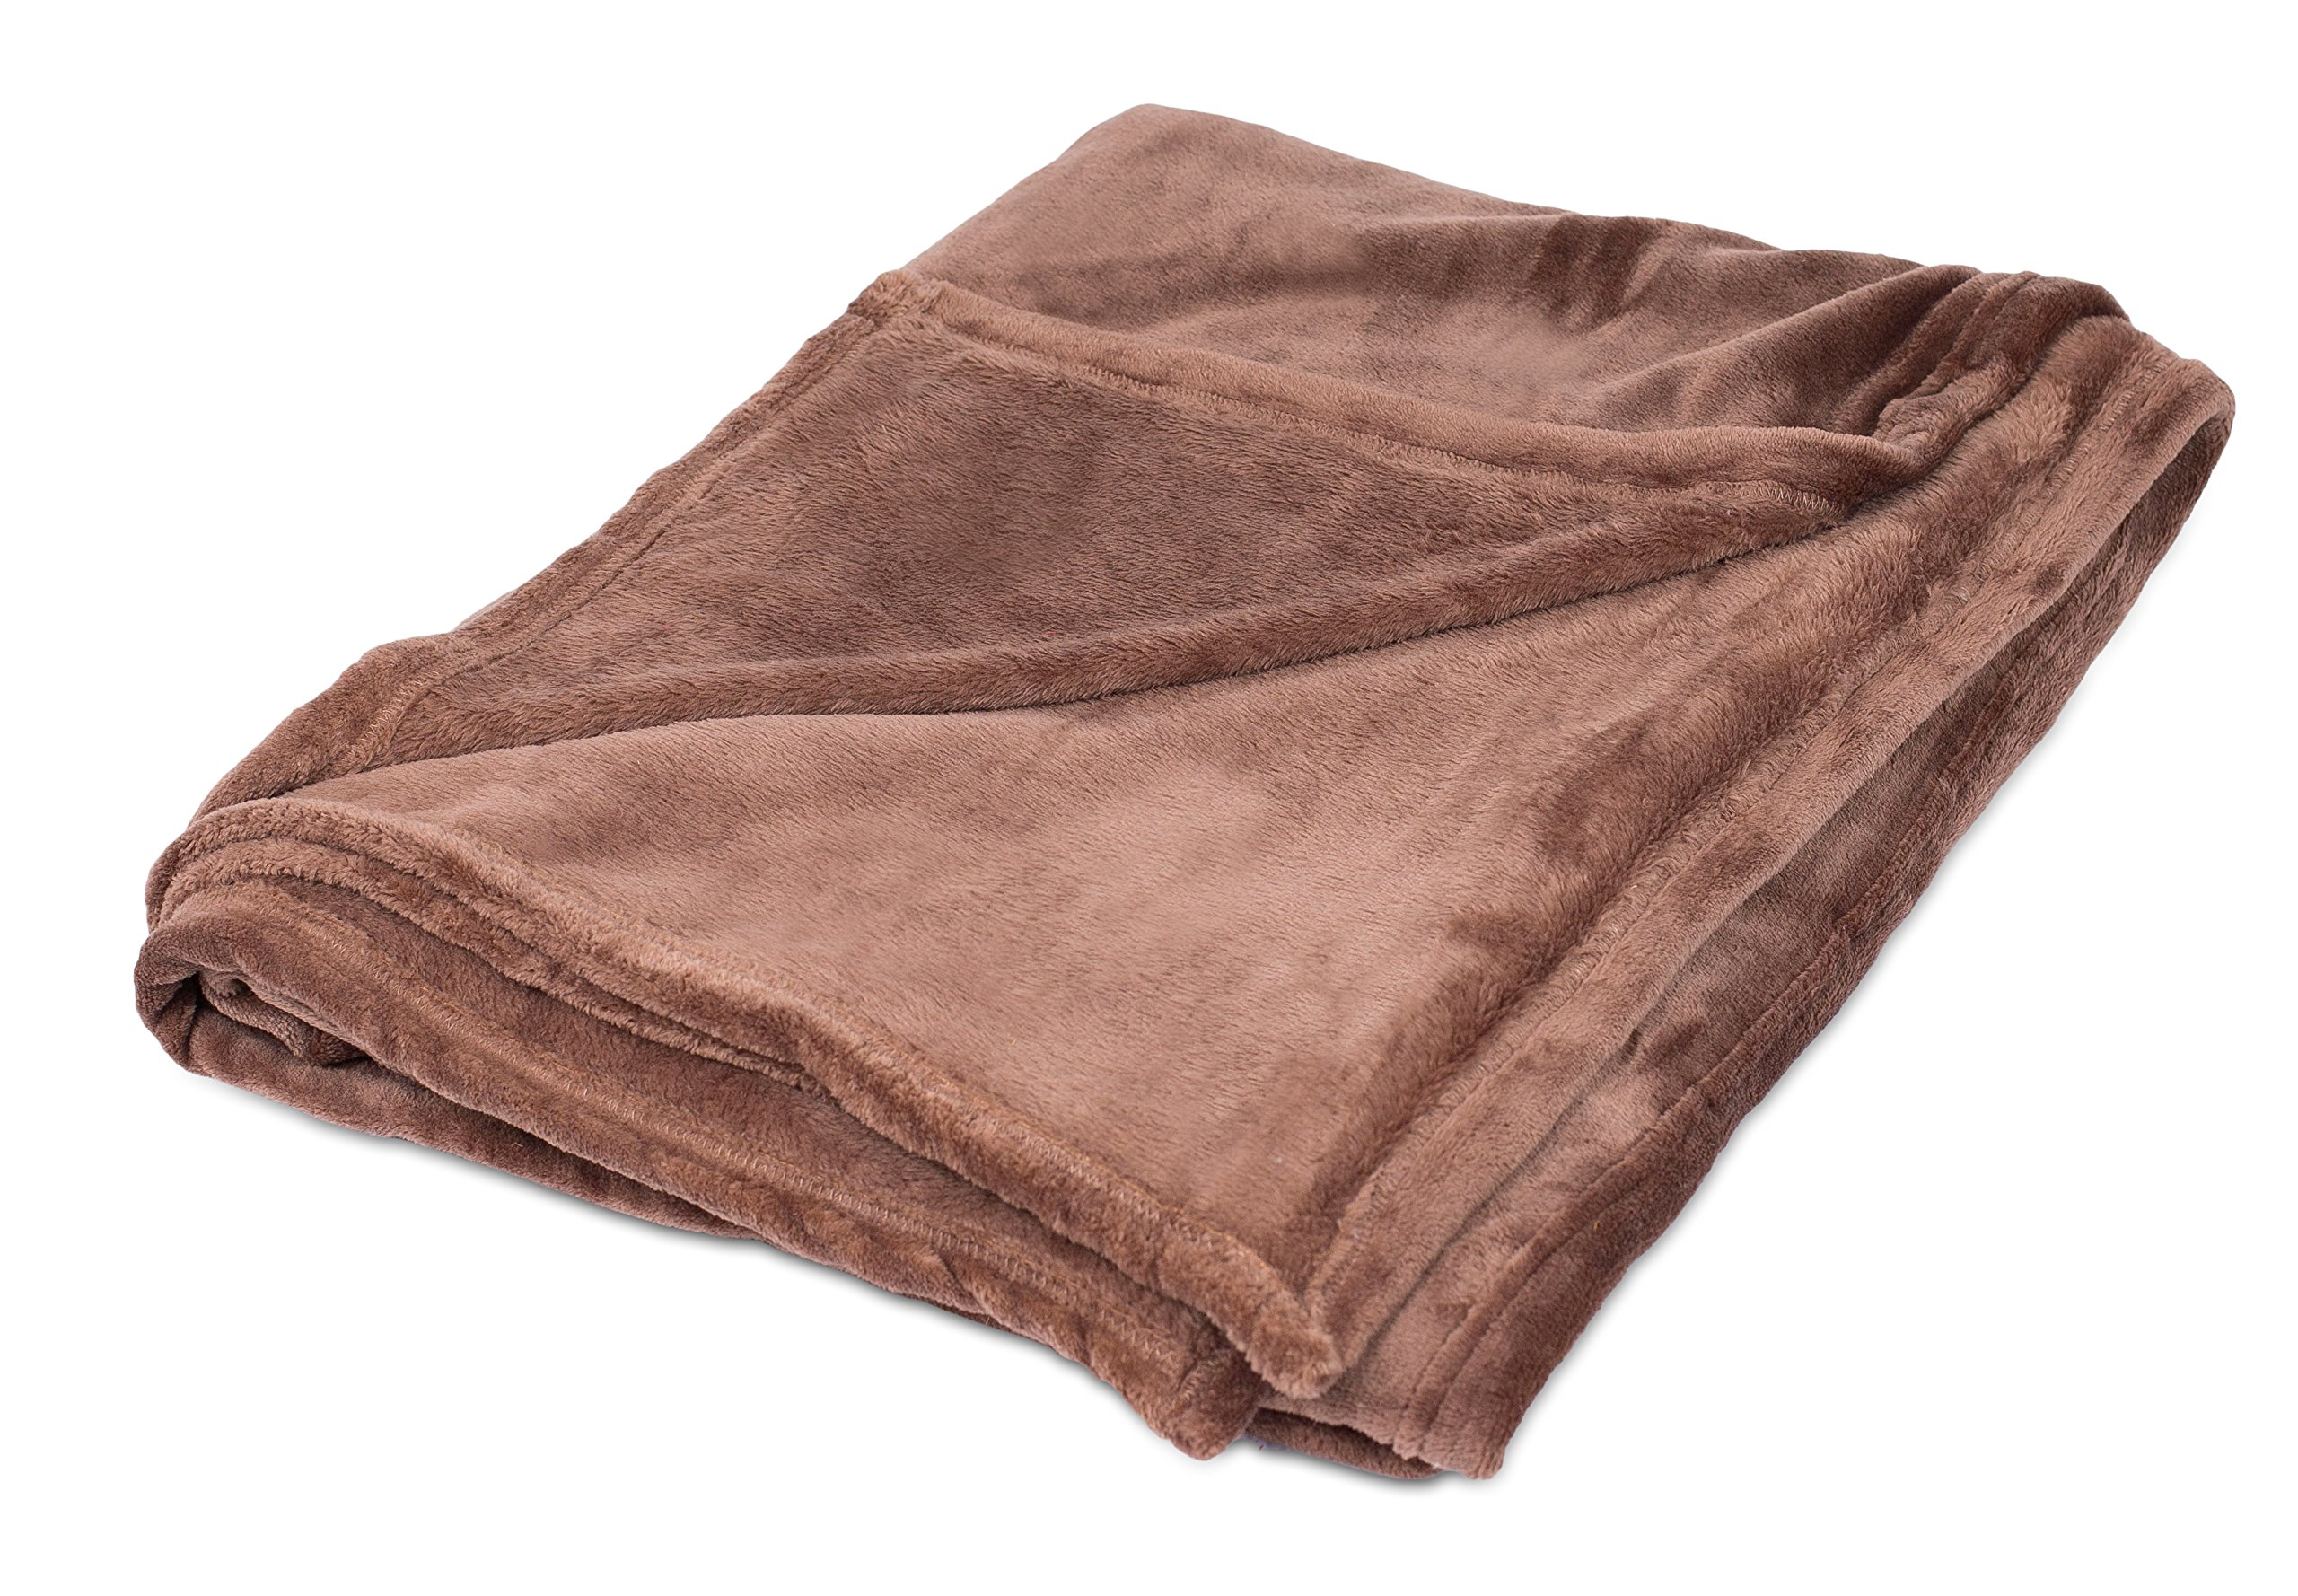 Internet's Best Plush Throw Blankets | Café (Brown) | Ultra Soft Couch Blanket | Light Weight Sofa Throw | 100% Microfiber Polyester | Easy Travel | Twin Bed | 66 x 90